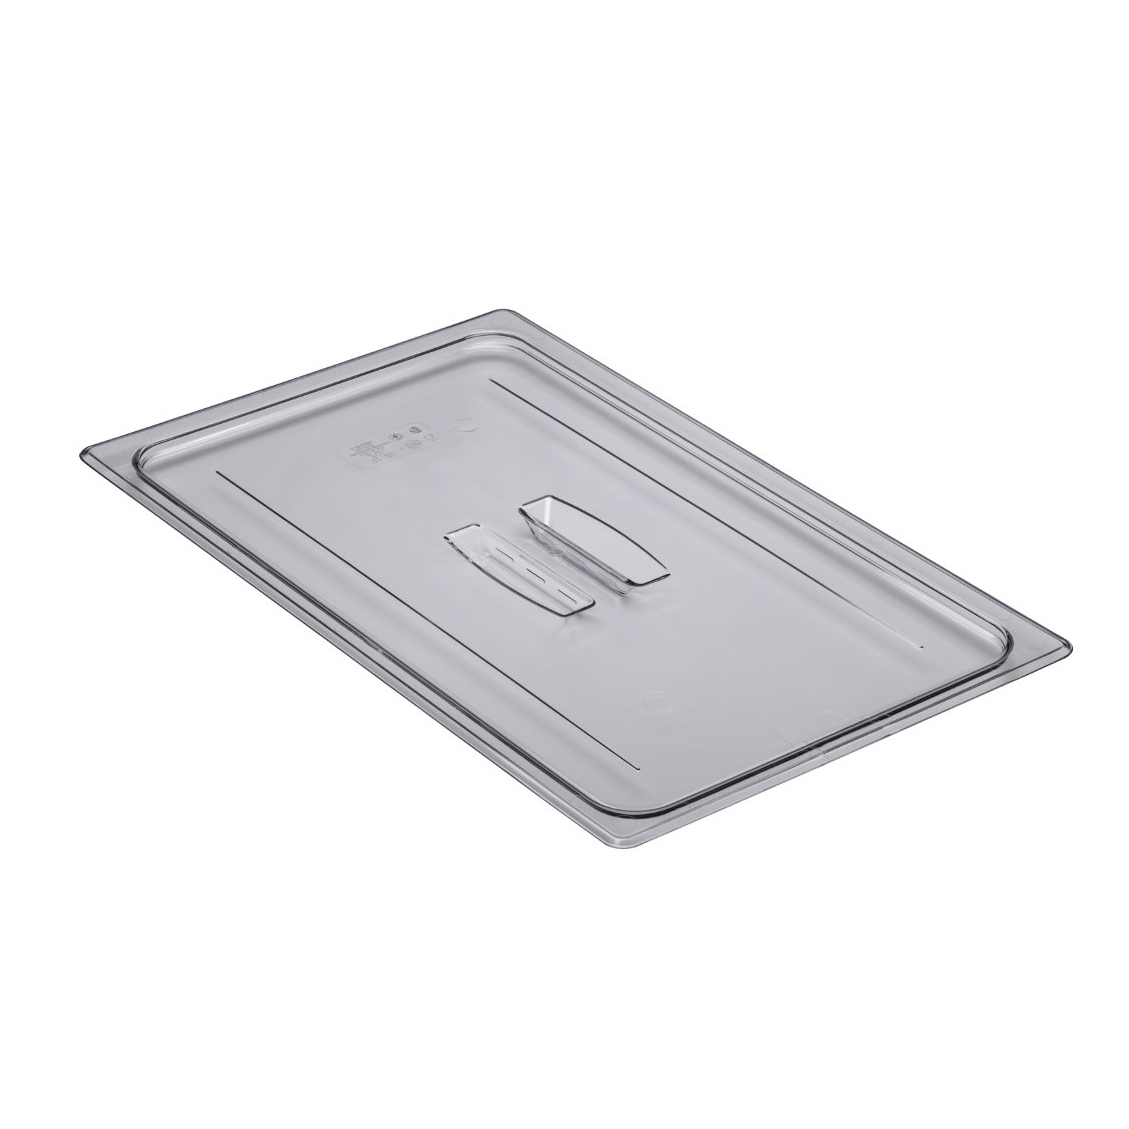 10CWCH135 Camwear® Full Size Food Pan Cover 8P2810C